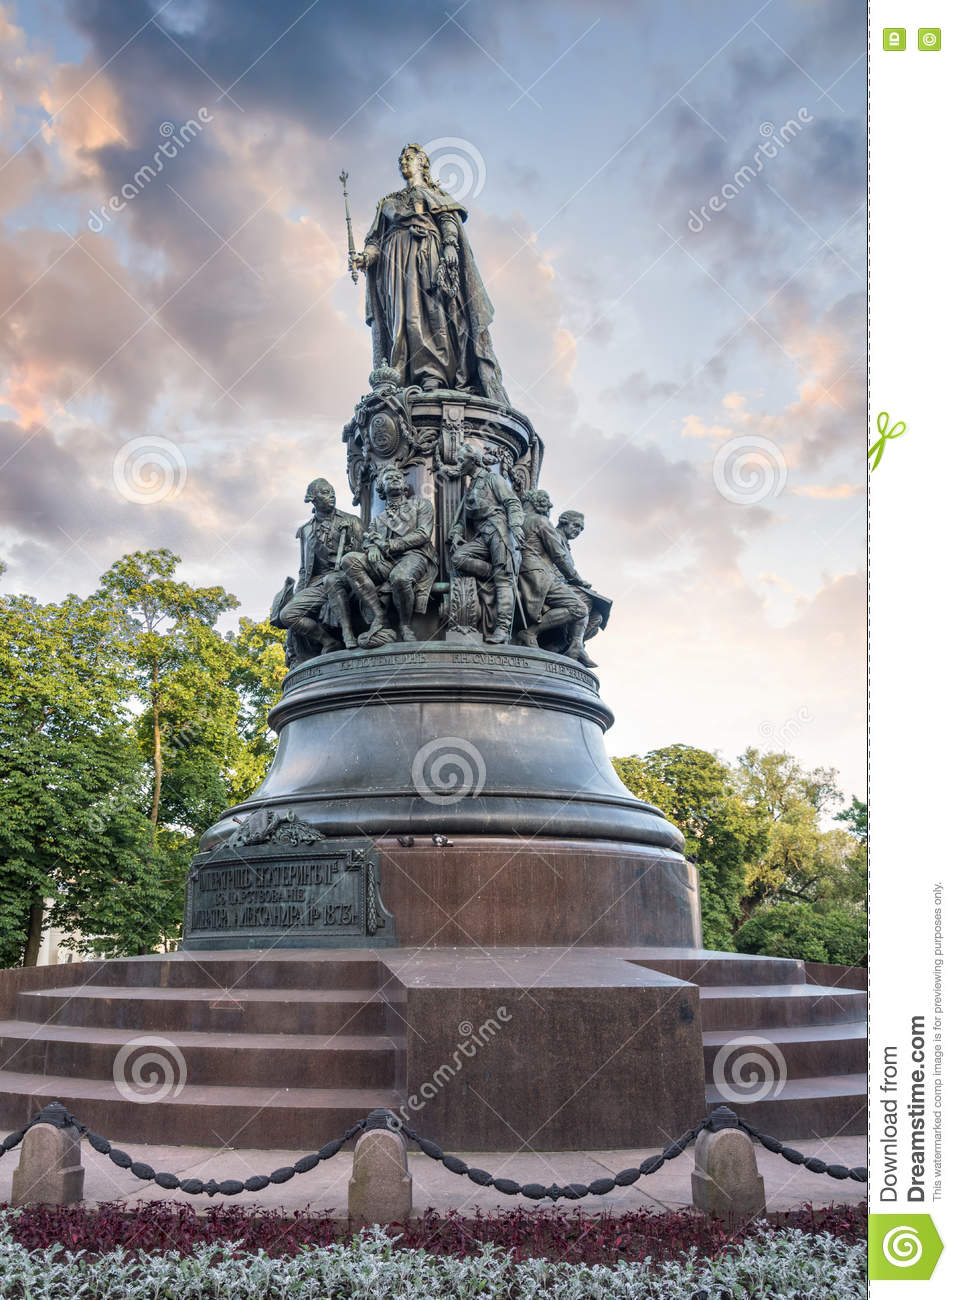 Monument to Catherine the Great in St. Petersburg: description, photo 50